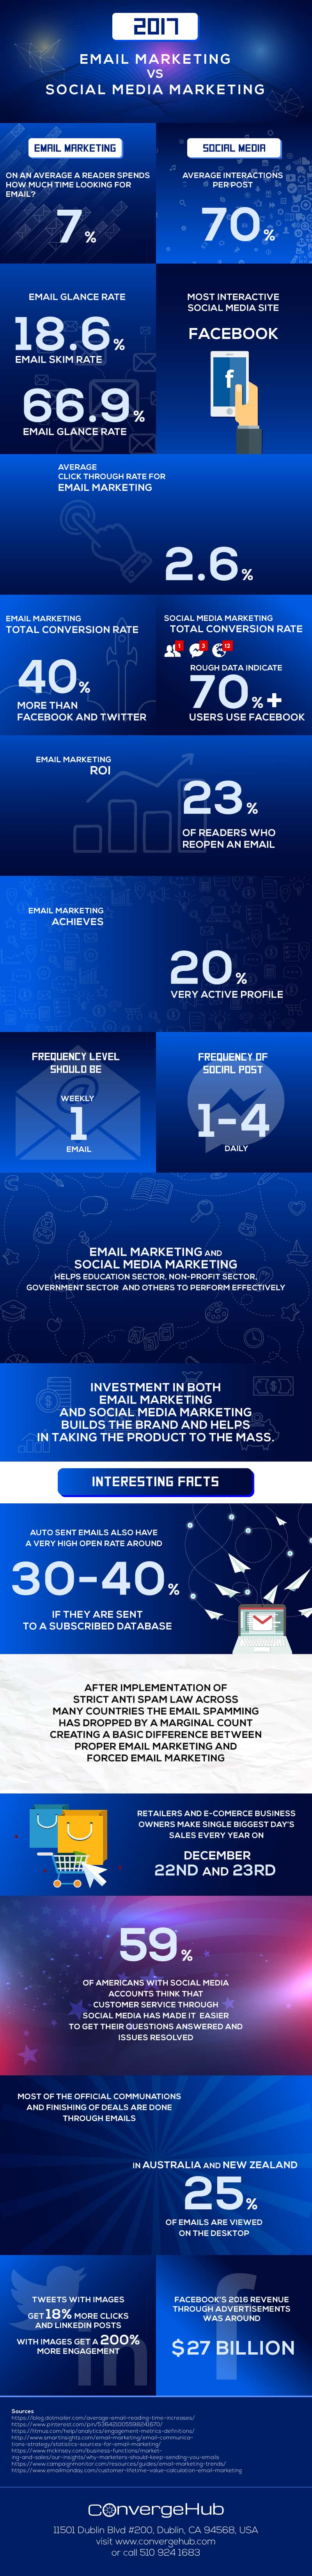 Email Marketing vs Social Media Marketing